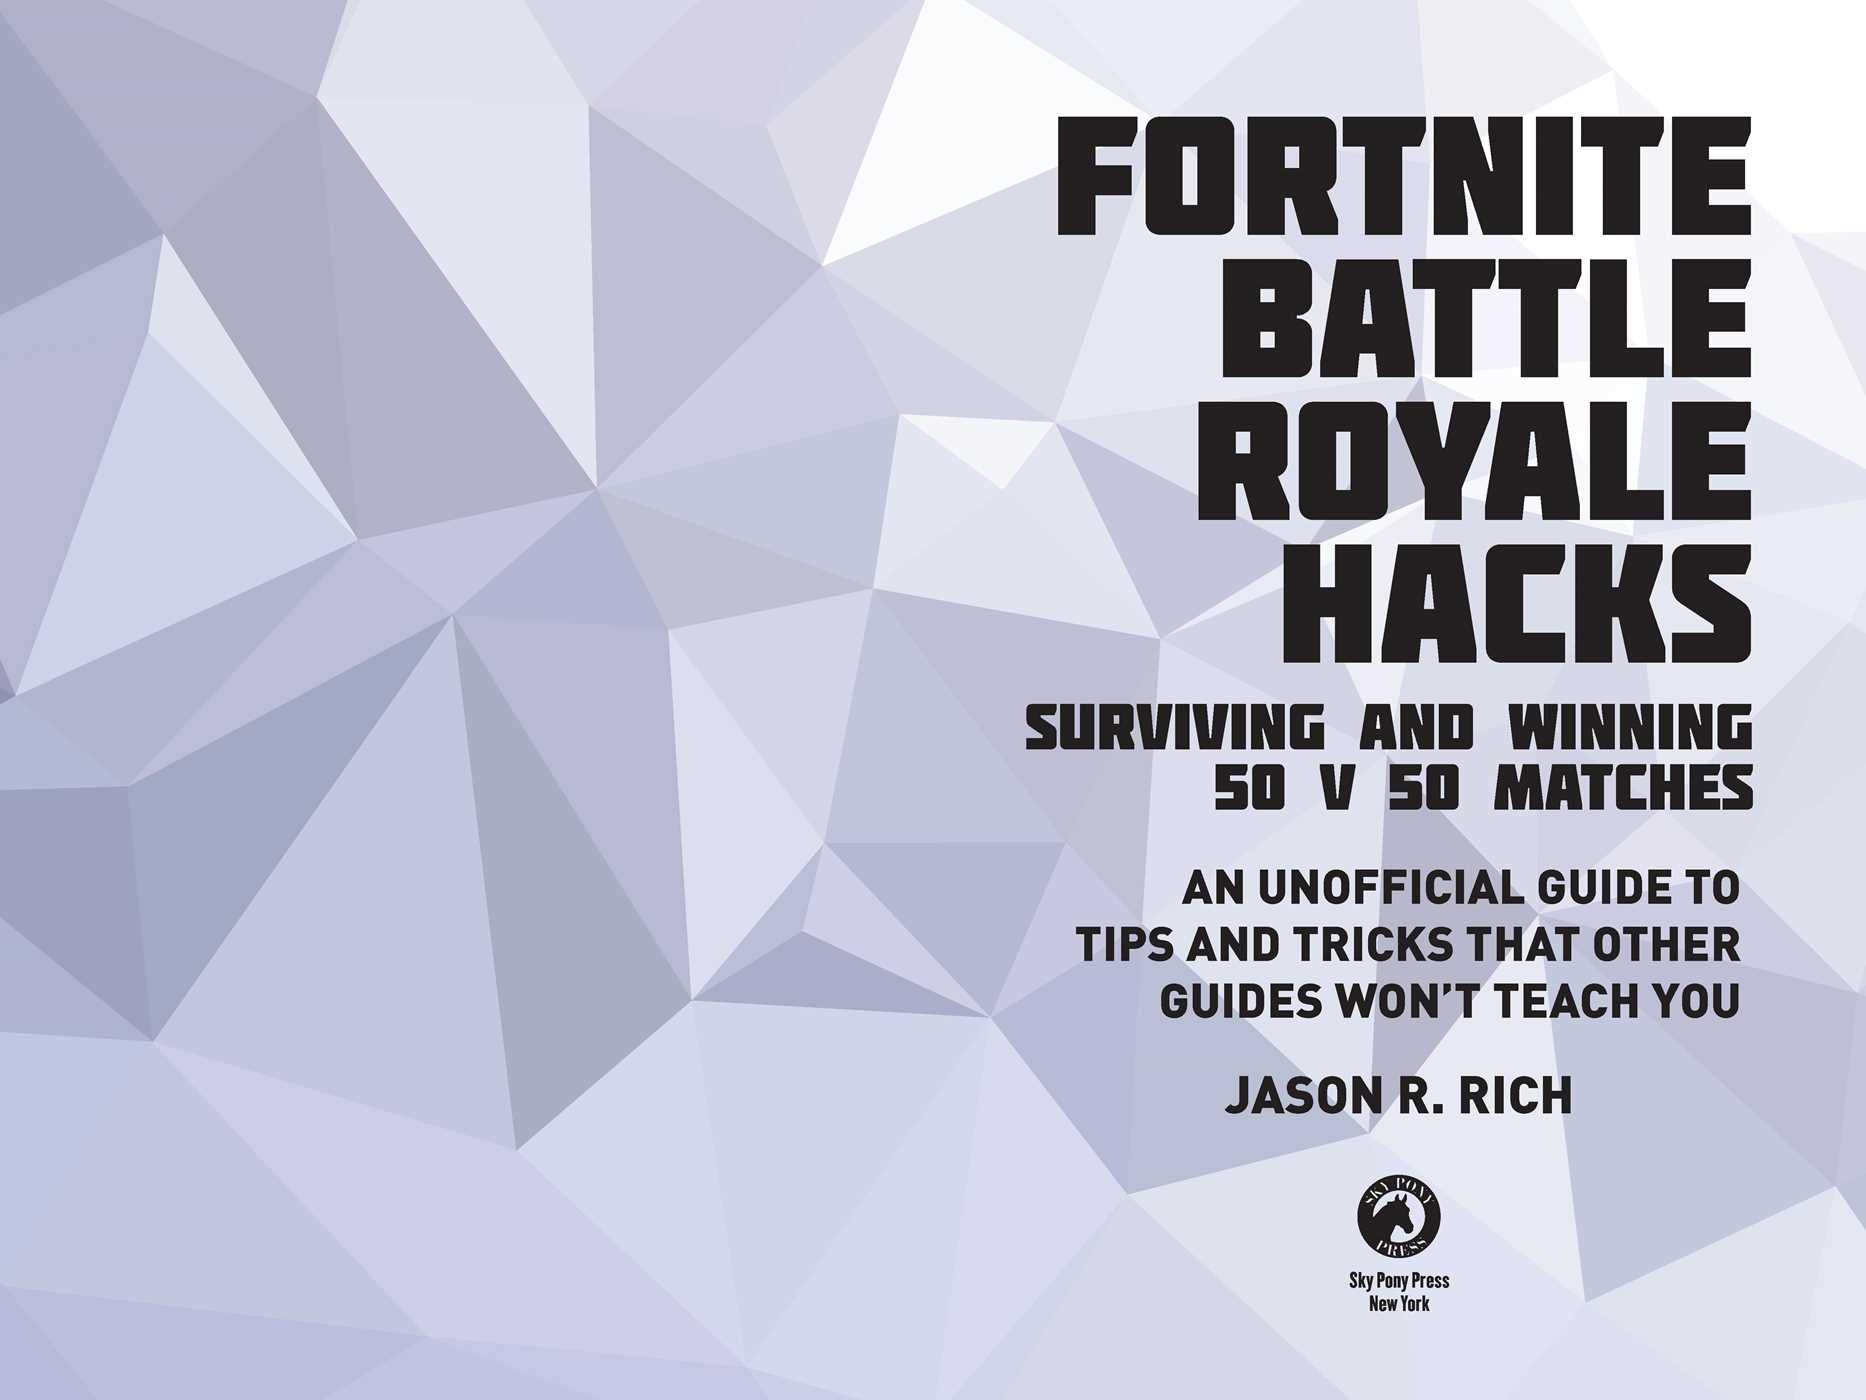 fortnite battle royale hacks surviving and winning 50 v 50 matches an unofficial guide to tips and tricks that other guides won t teach you amazon co uk - fortnite 50 v 50 tips